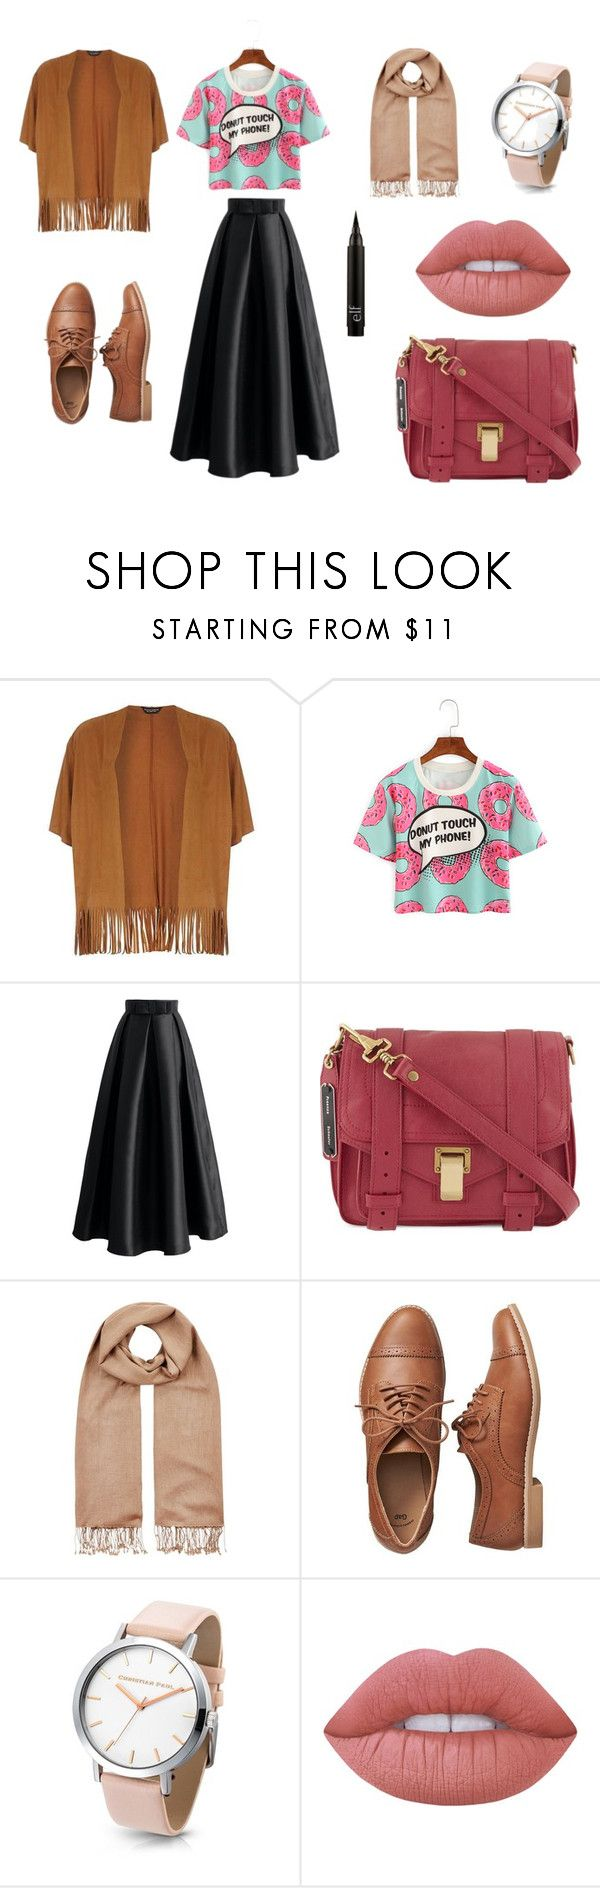 """""""hijab chic"""" by ikram-etsku on Polyvore featuring Dorothy Perkins, Chicwish, Proenza Schouler, Harrods, Gap and Lime Crime"""